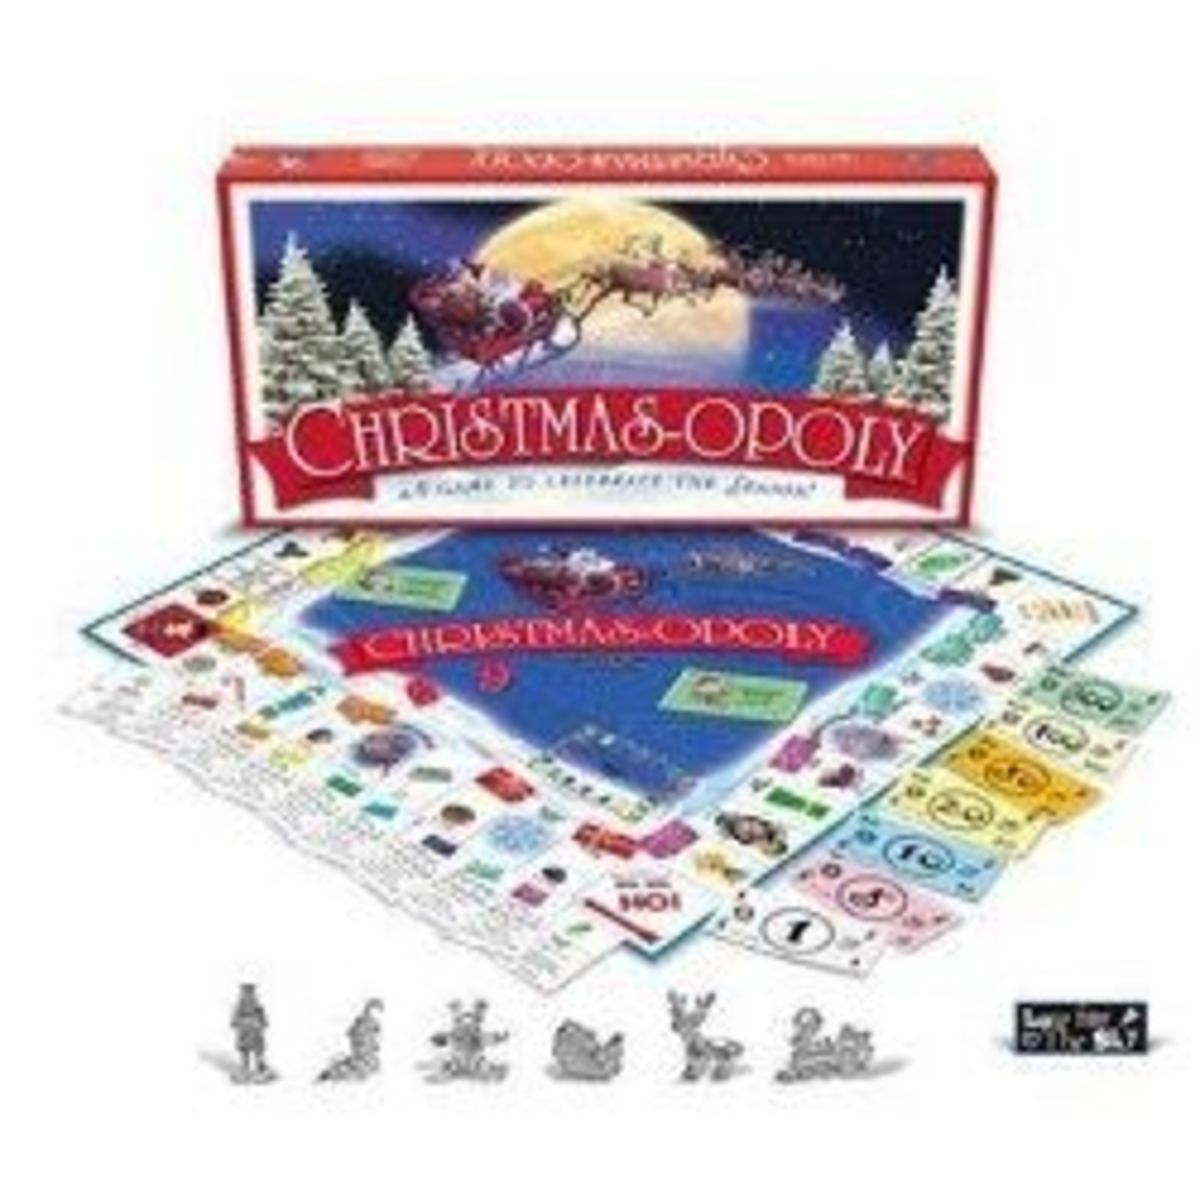 Christmas-Opoly, The Holiday Version Of Monopoly For Christmas Game Lovers.  Presents, Christmas Trees, Holly And Mistletoe Are Just The Beginning Of The Fun You Will Have With This Fun Christmas Game.  Photo is from Amazon.